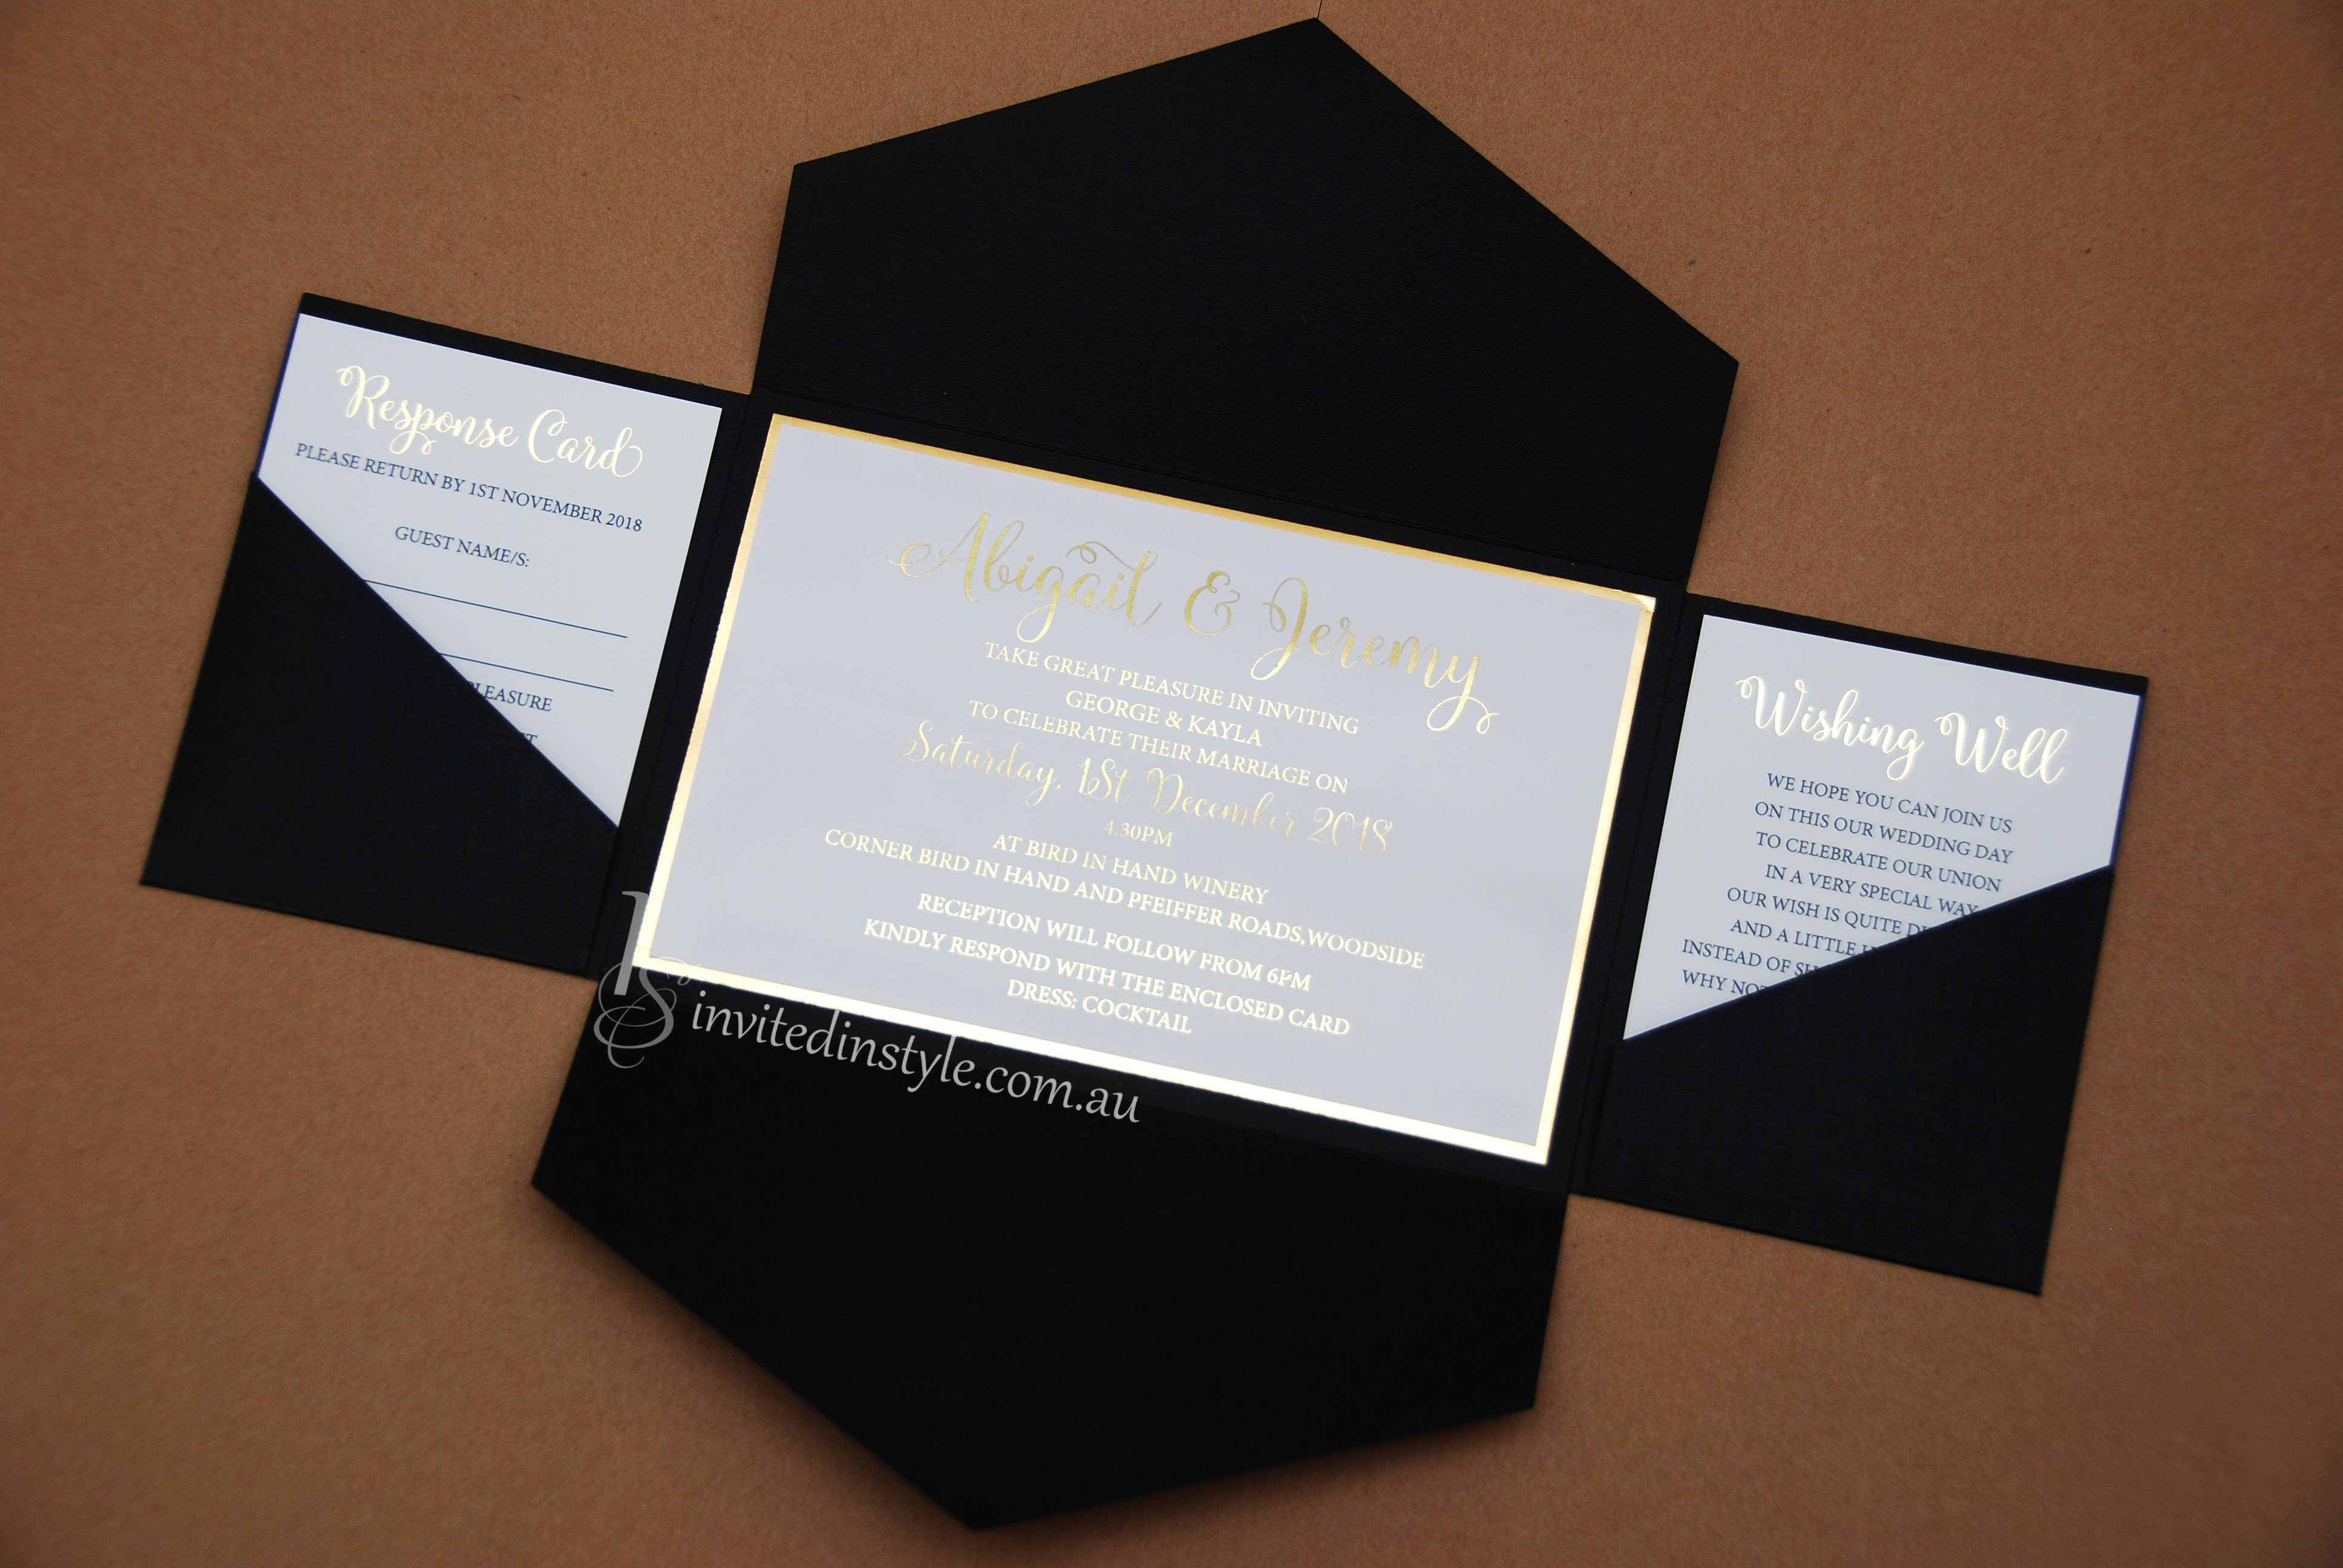 Foiled Invitations Invited in Style